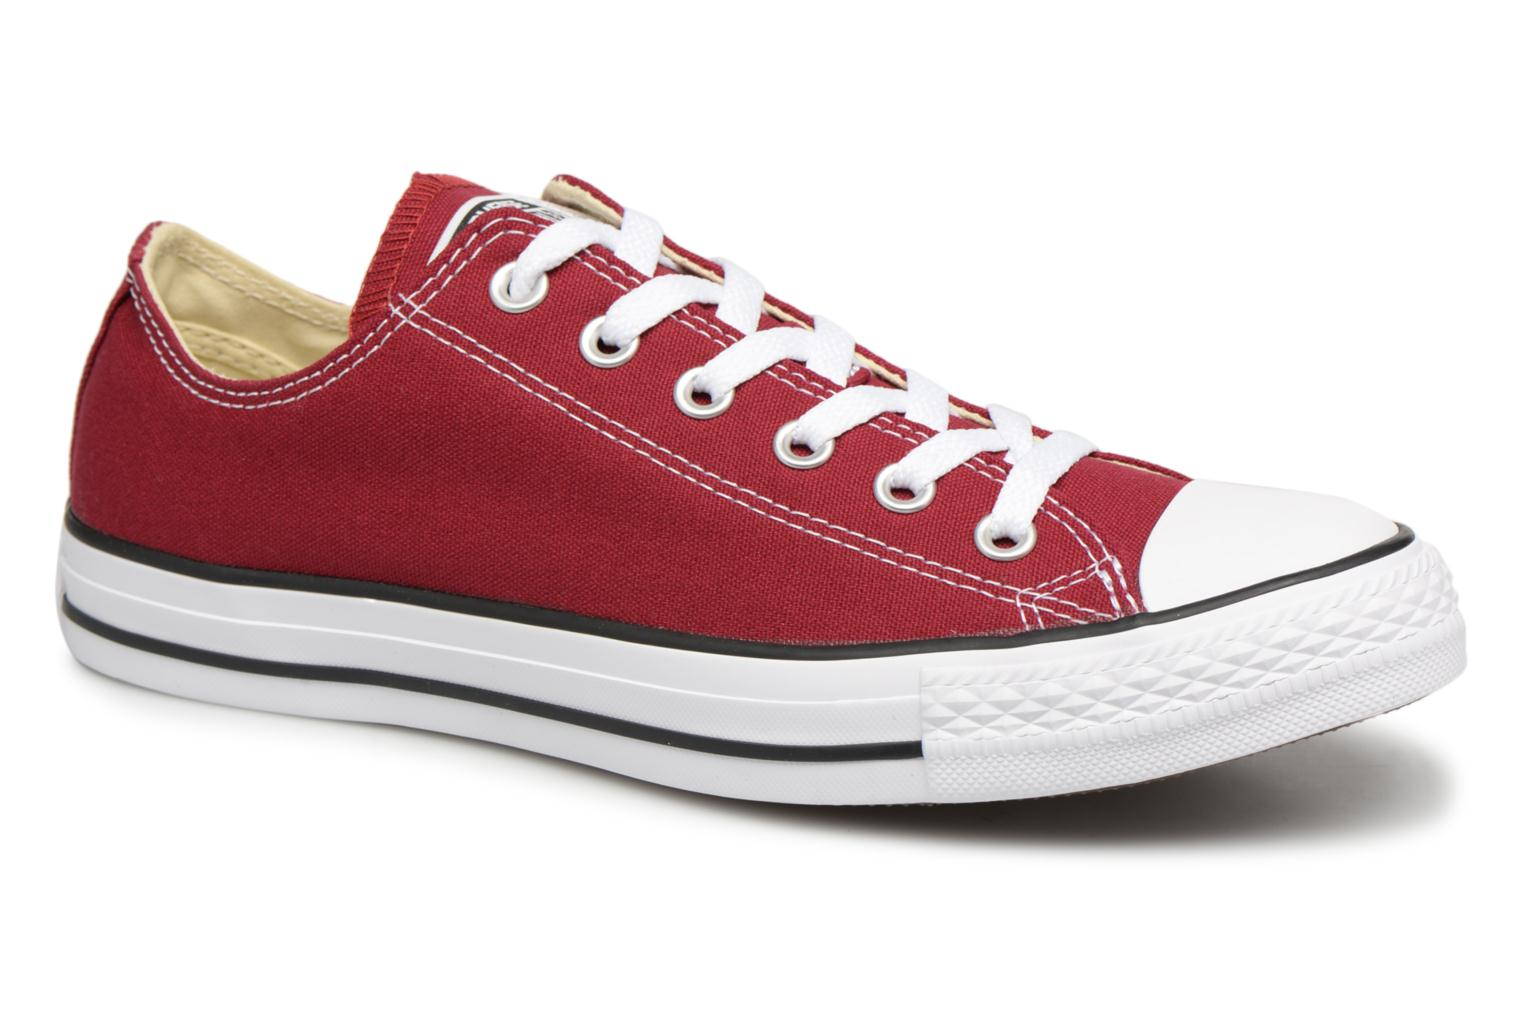 Converse Chuck Taylor Taylor Taylor All Star Ox W Burgundy Trainers chez ce569d